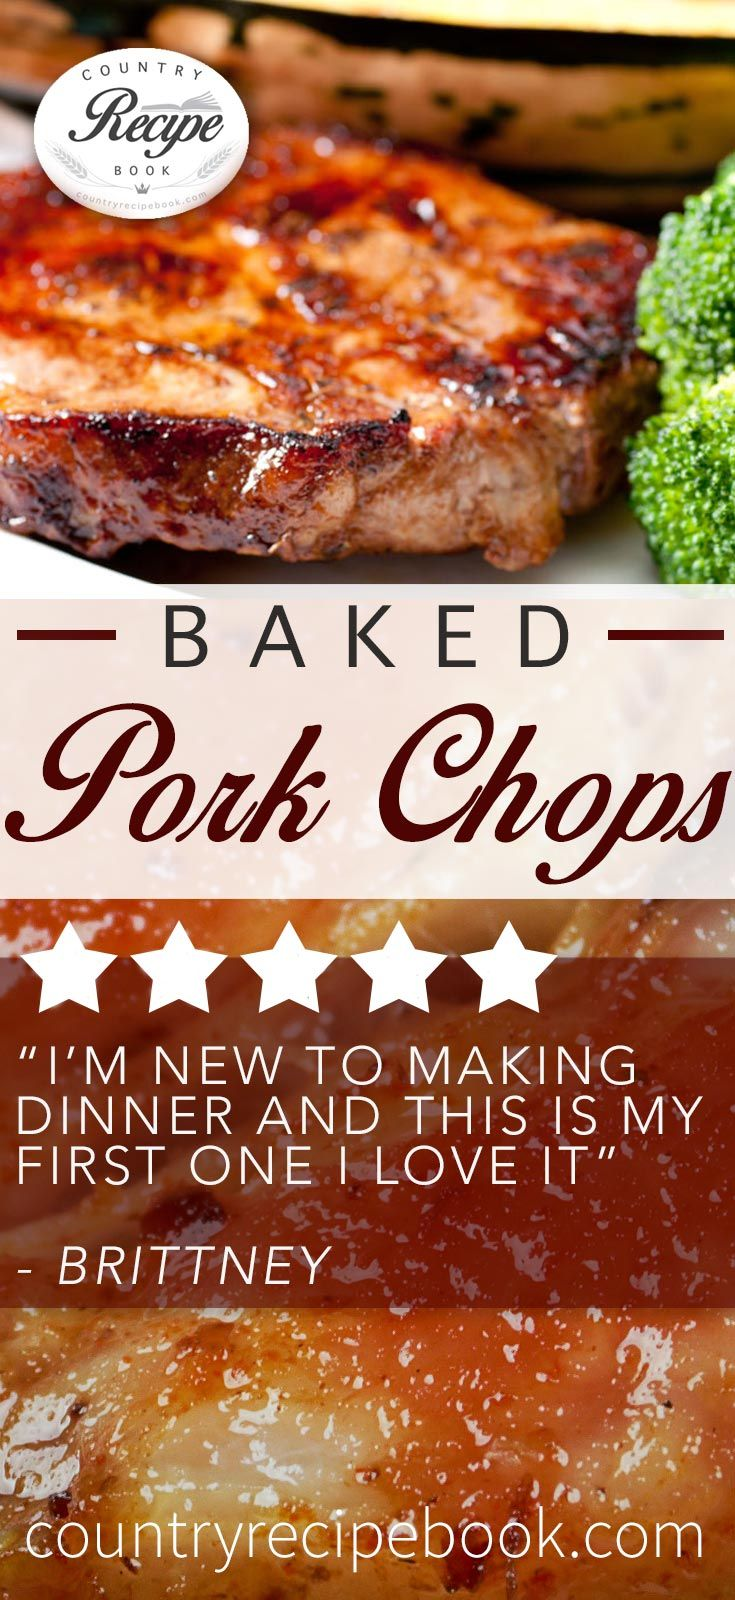 Different ways to cook pork chops - Country Style Baked Pork Chops Recipe Chops Recipe Pork Chop And Pork